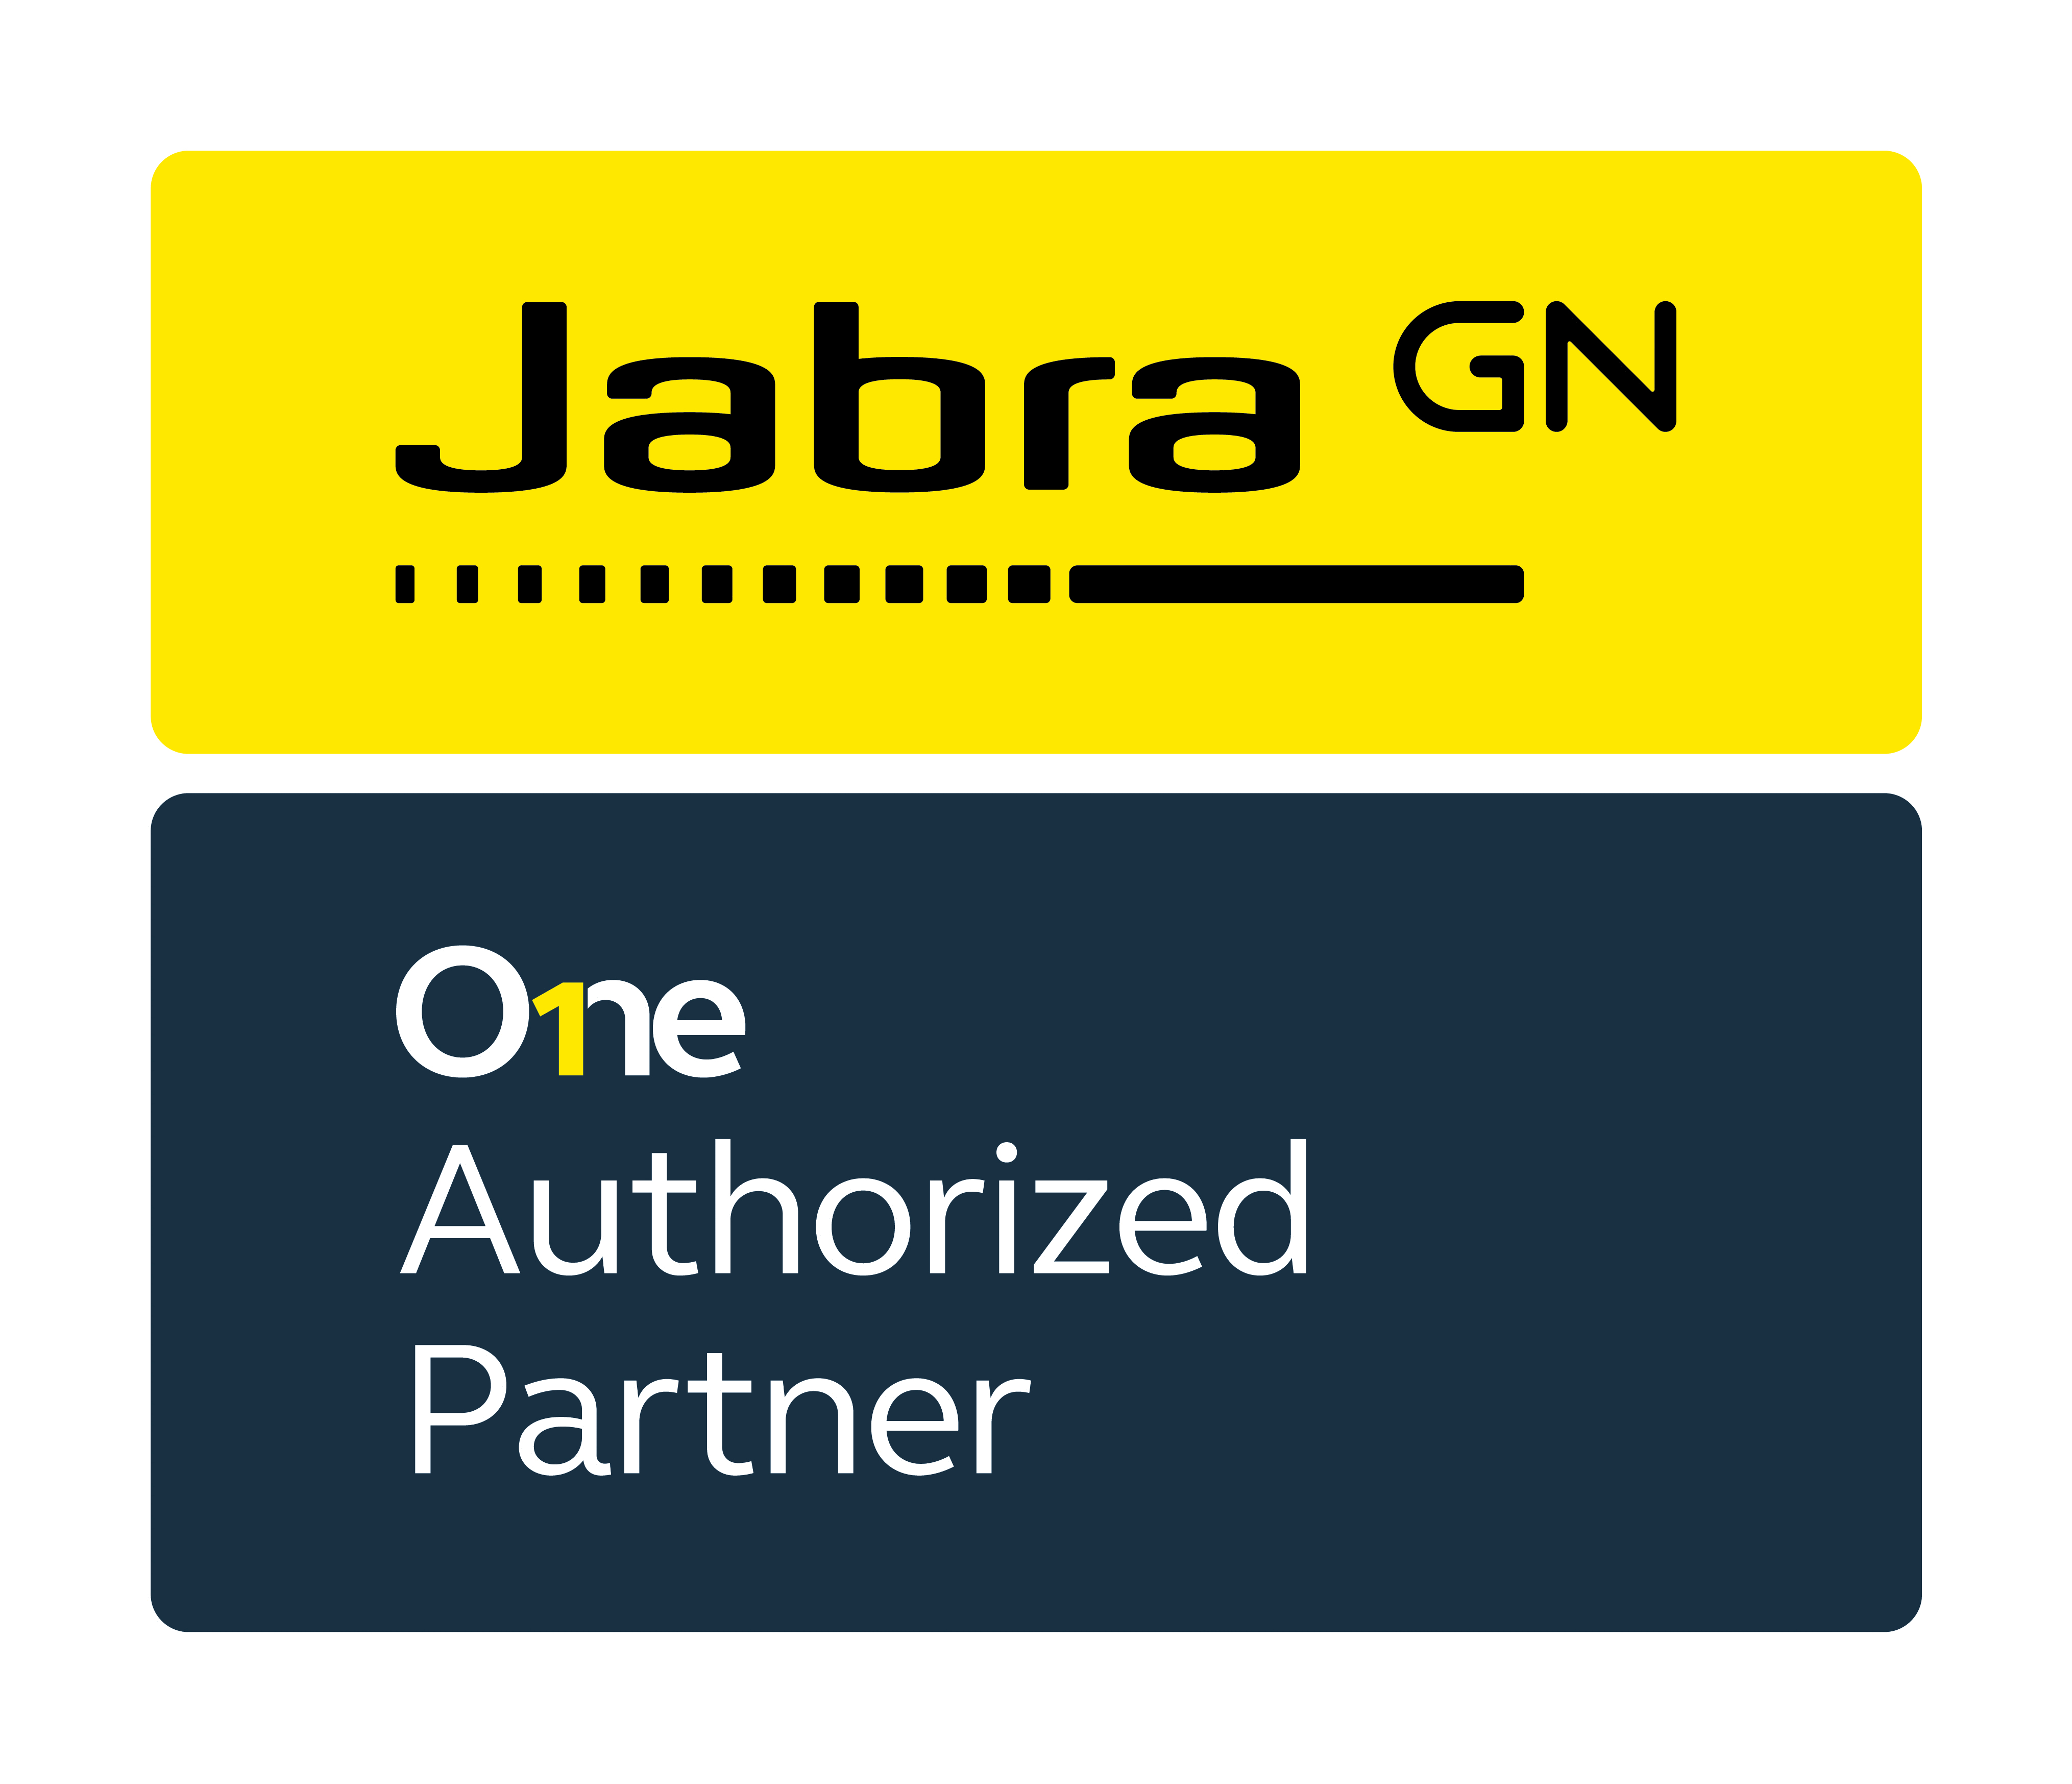 jabra_gn_cmyk_one_pp_authpart_port_300dpi